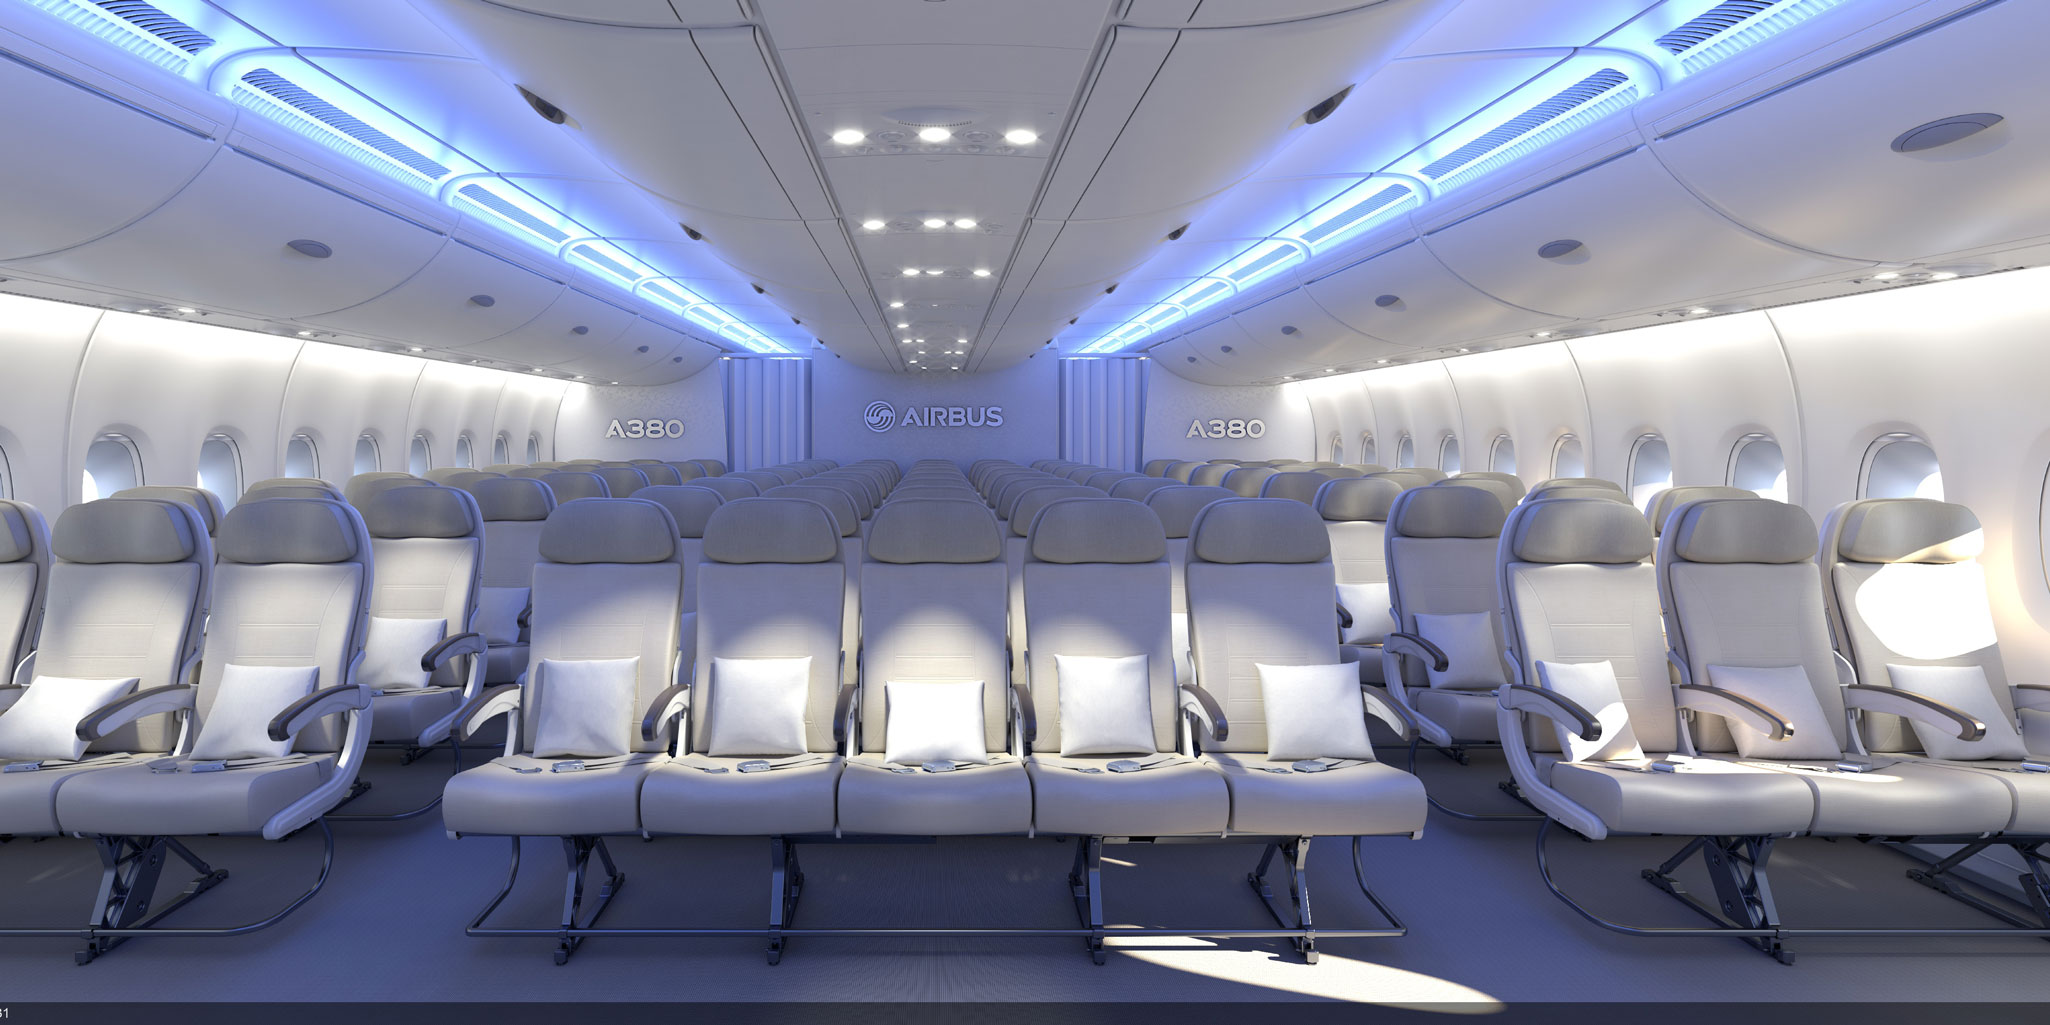 Airbus Adds More Economy Seats Aerospace News Aviation